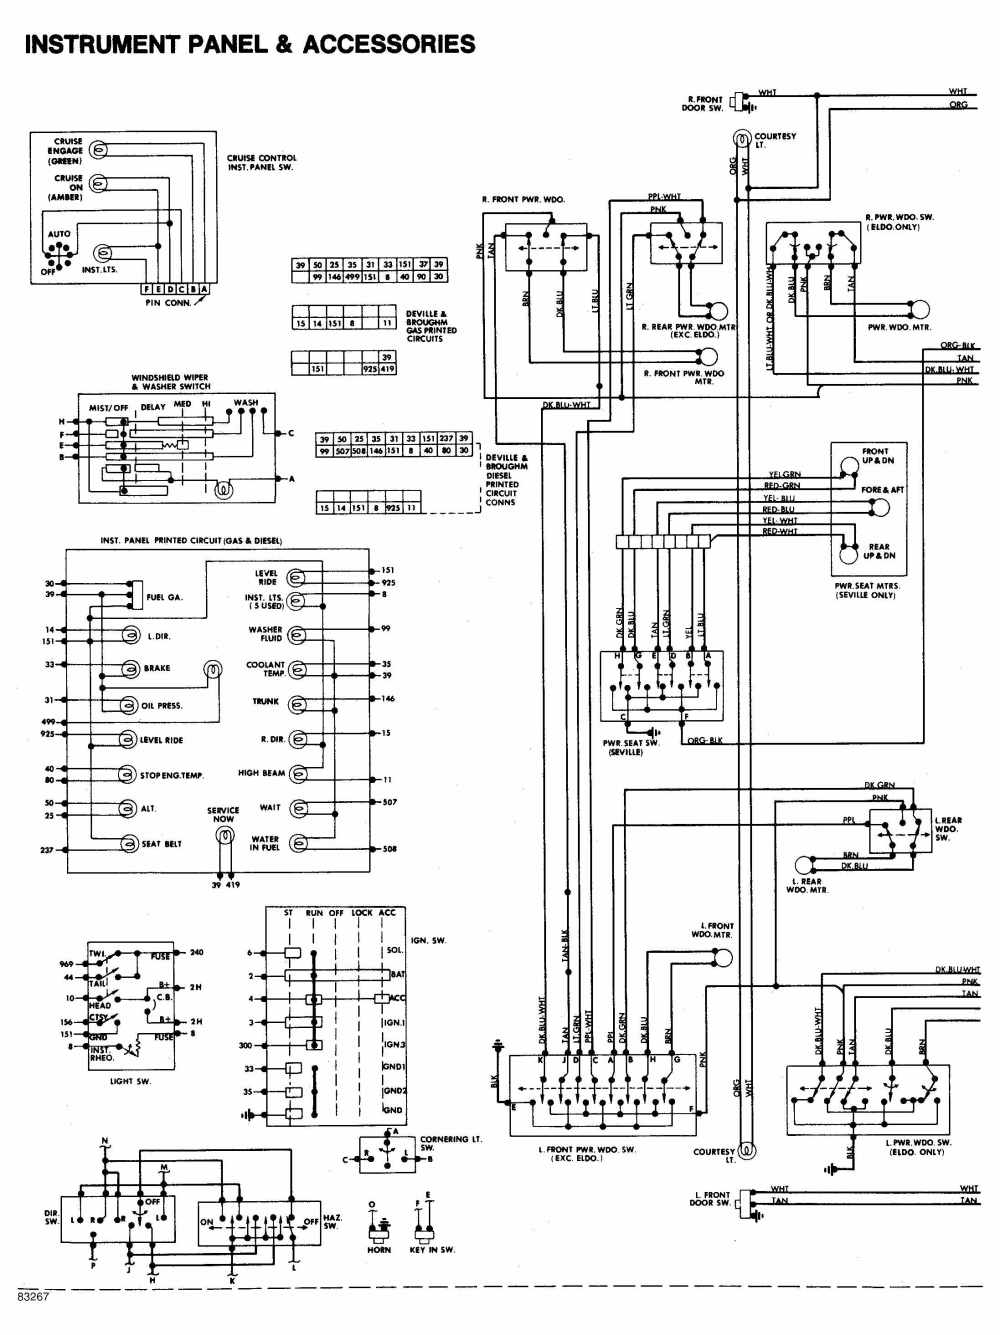 medium resolution of chevy diagrams gm wiring harness diagram 1984 cadillac deville instrument panel and accessories wiring diagram drawing